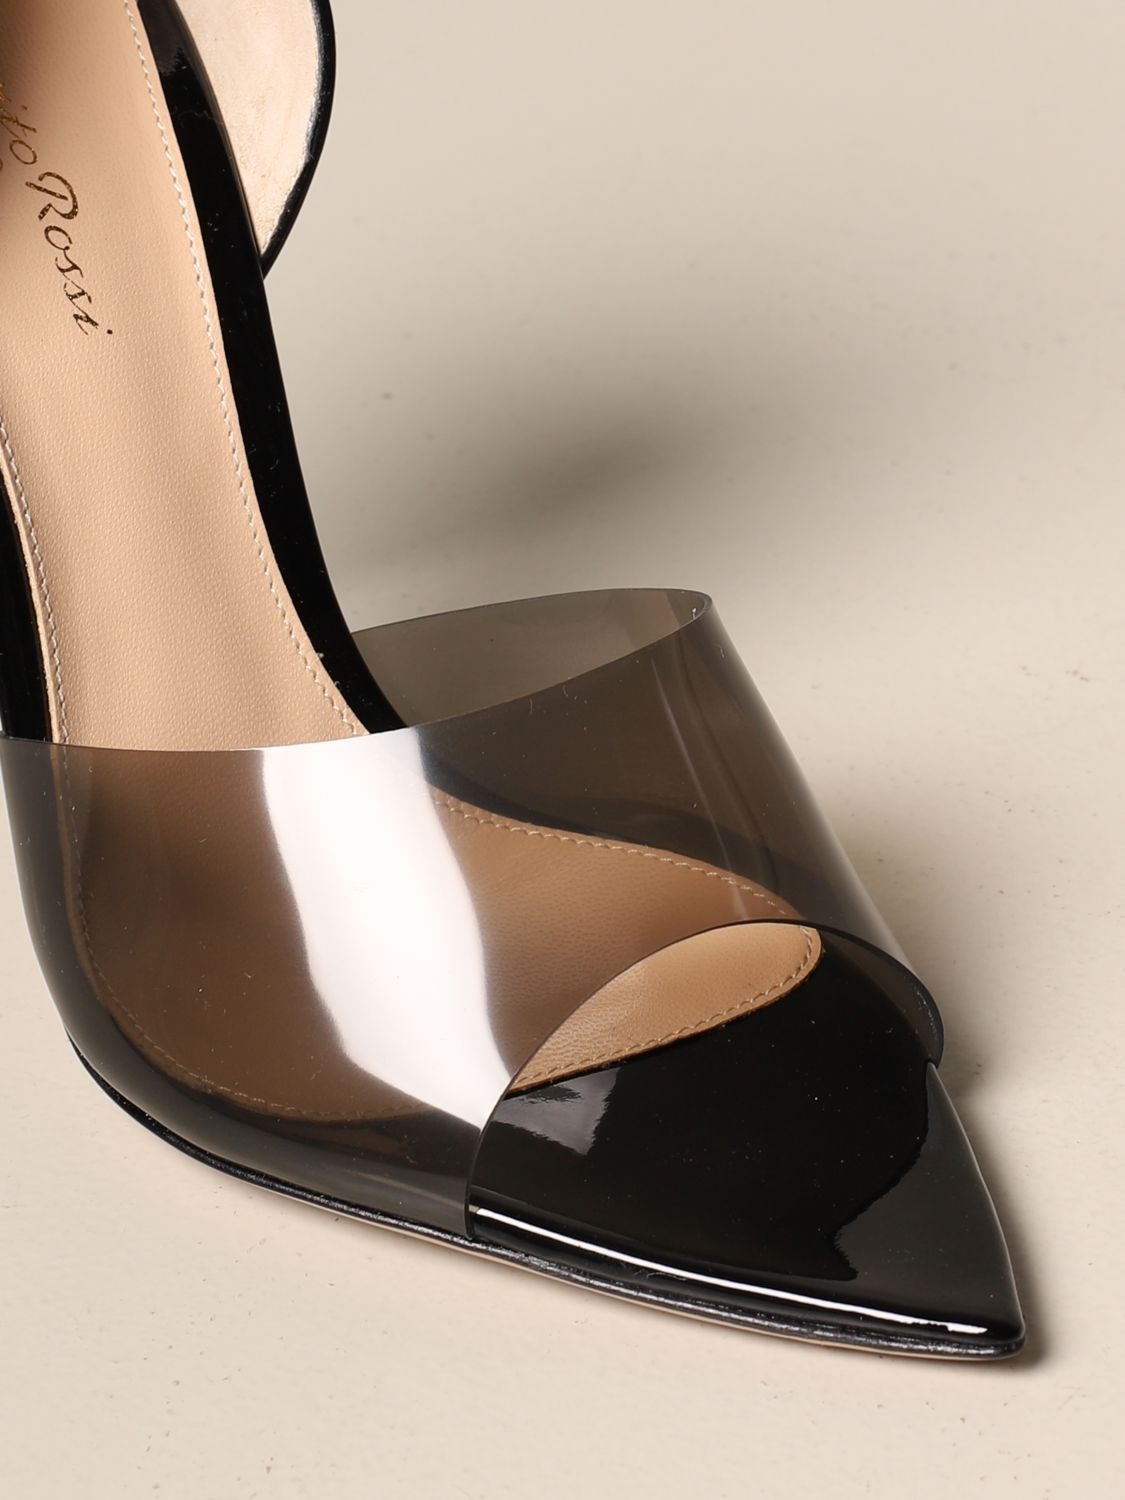 Chaussures à talons Gianvito Rossi: Chaussures à talons femme Gianvito Rossi noir 4